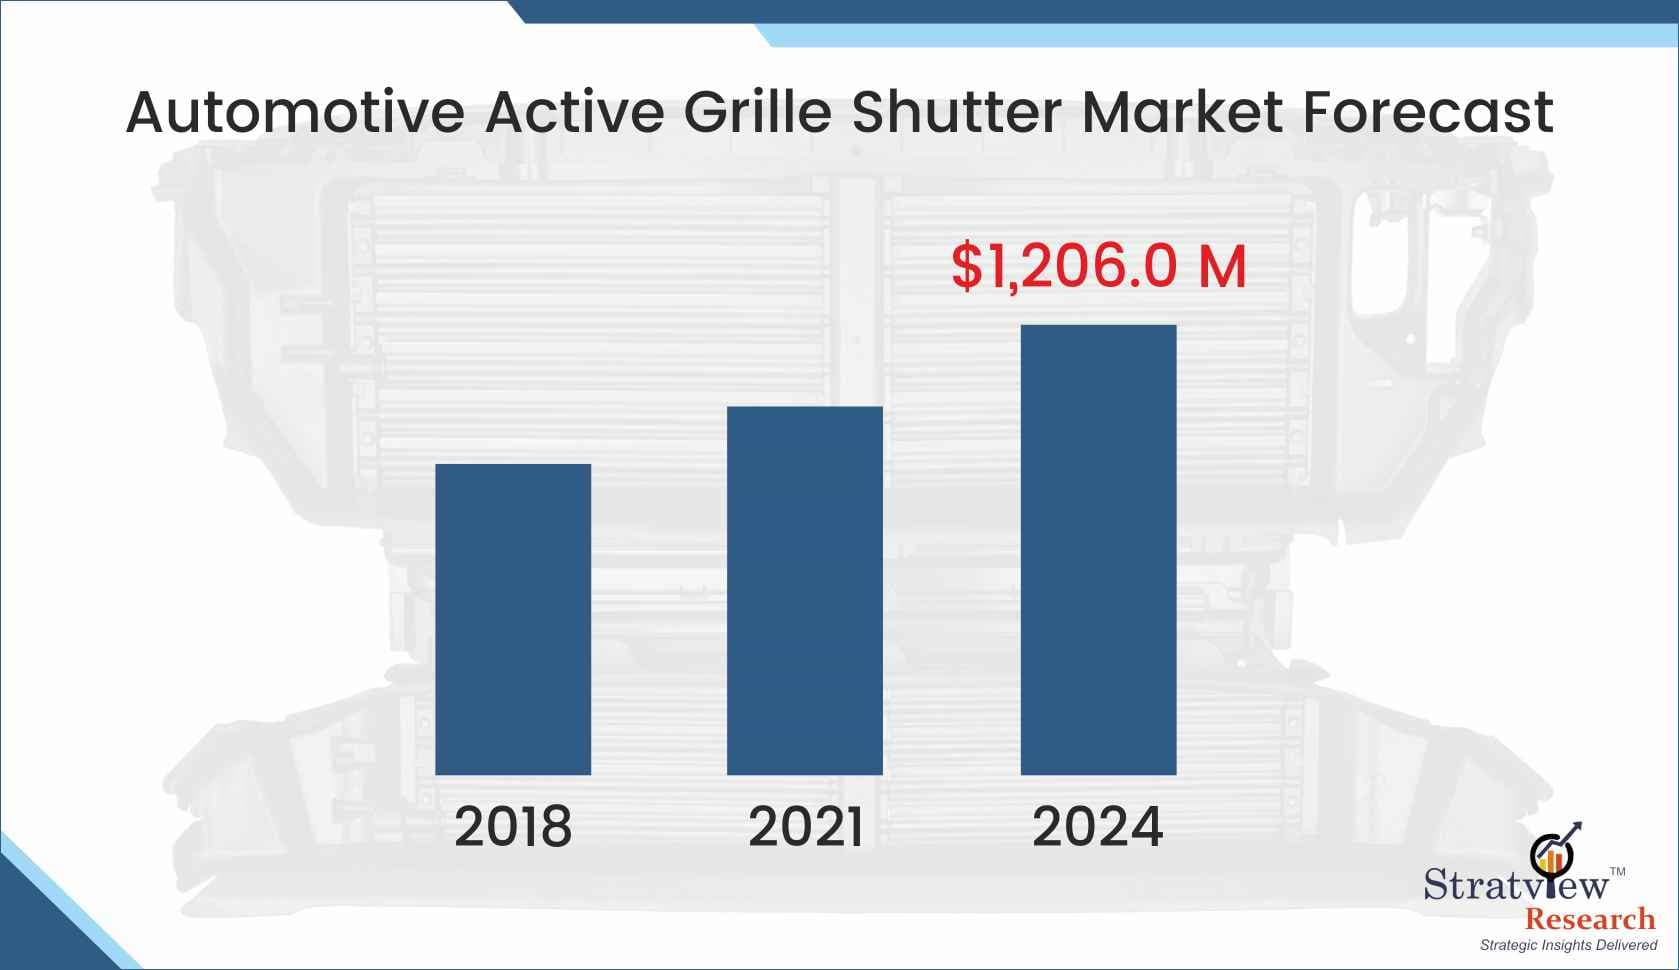 Automotive Active Grille Shutter Market Forecast